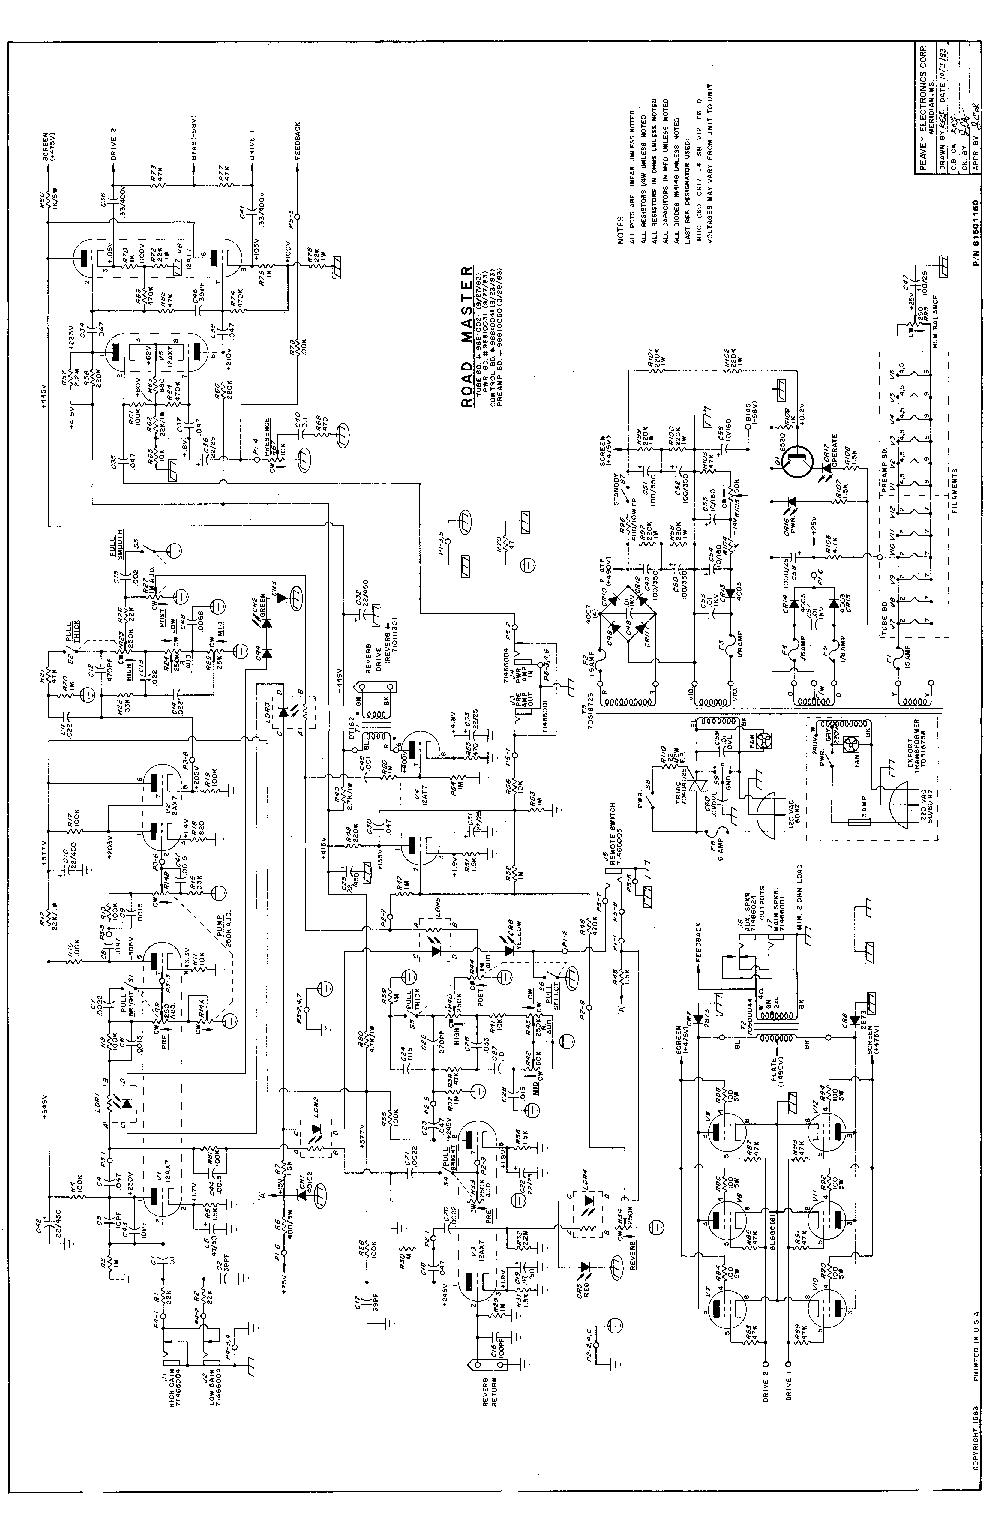 Peavey Patriot Wiring Diagram Peavey Free Download Wiring – Peavey T 60 Wiring Diagram